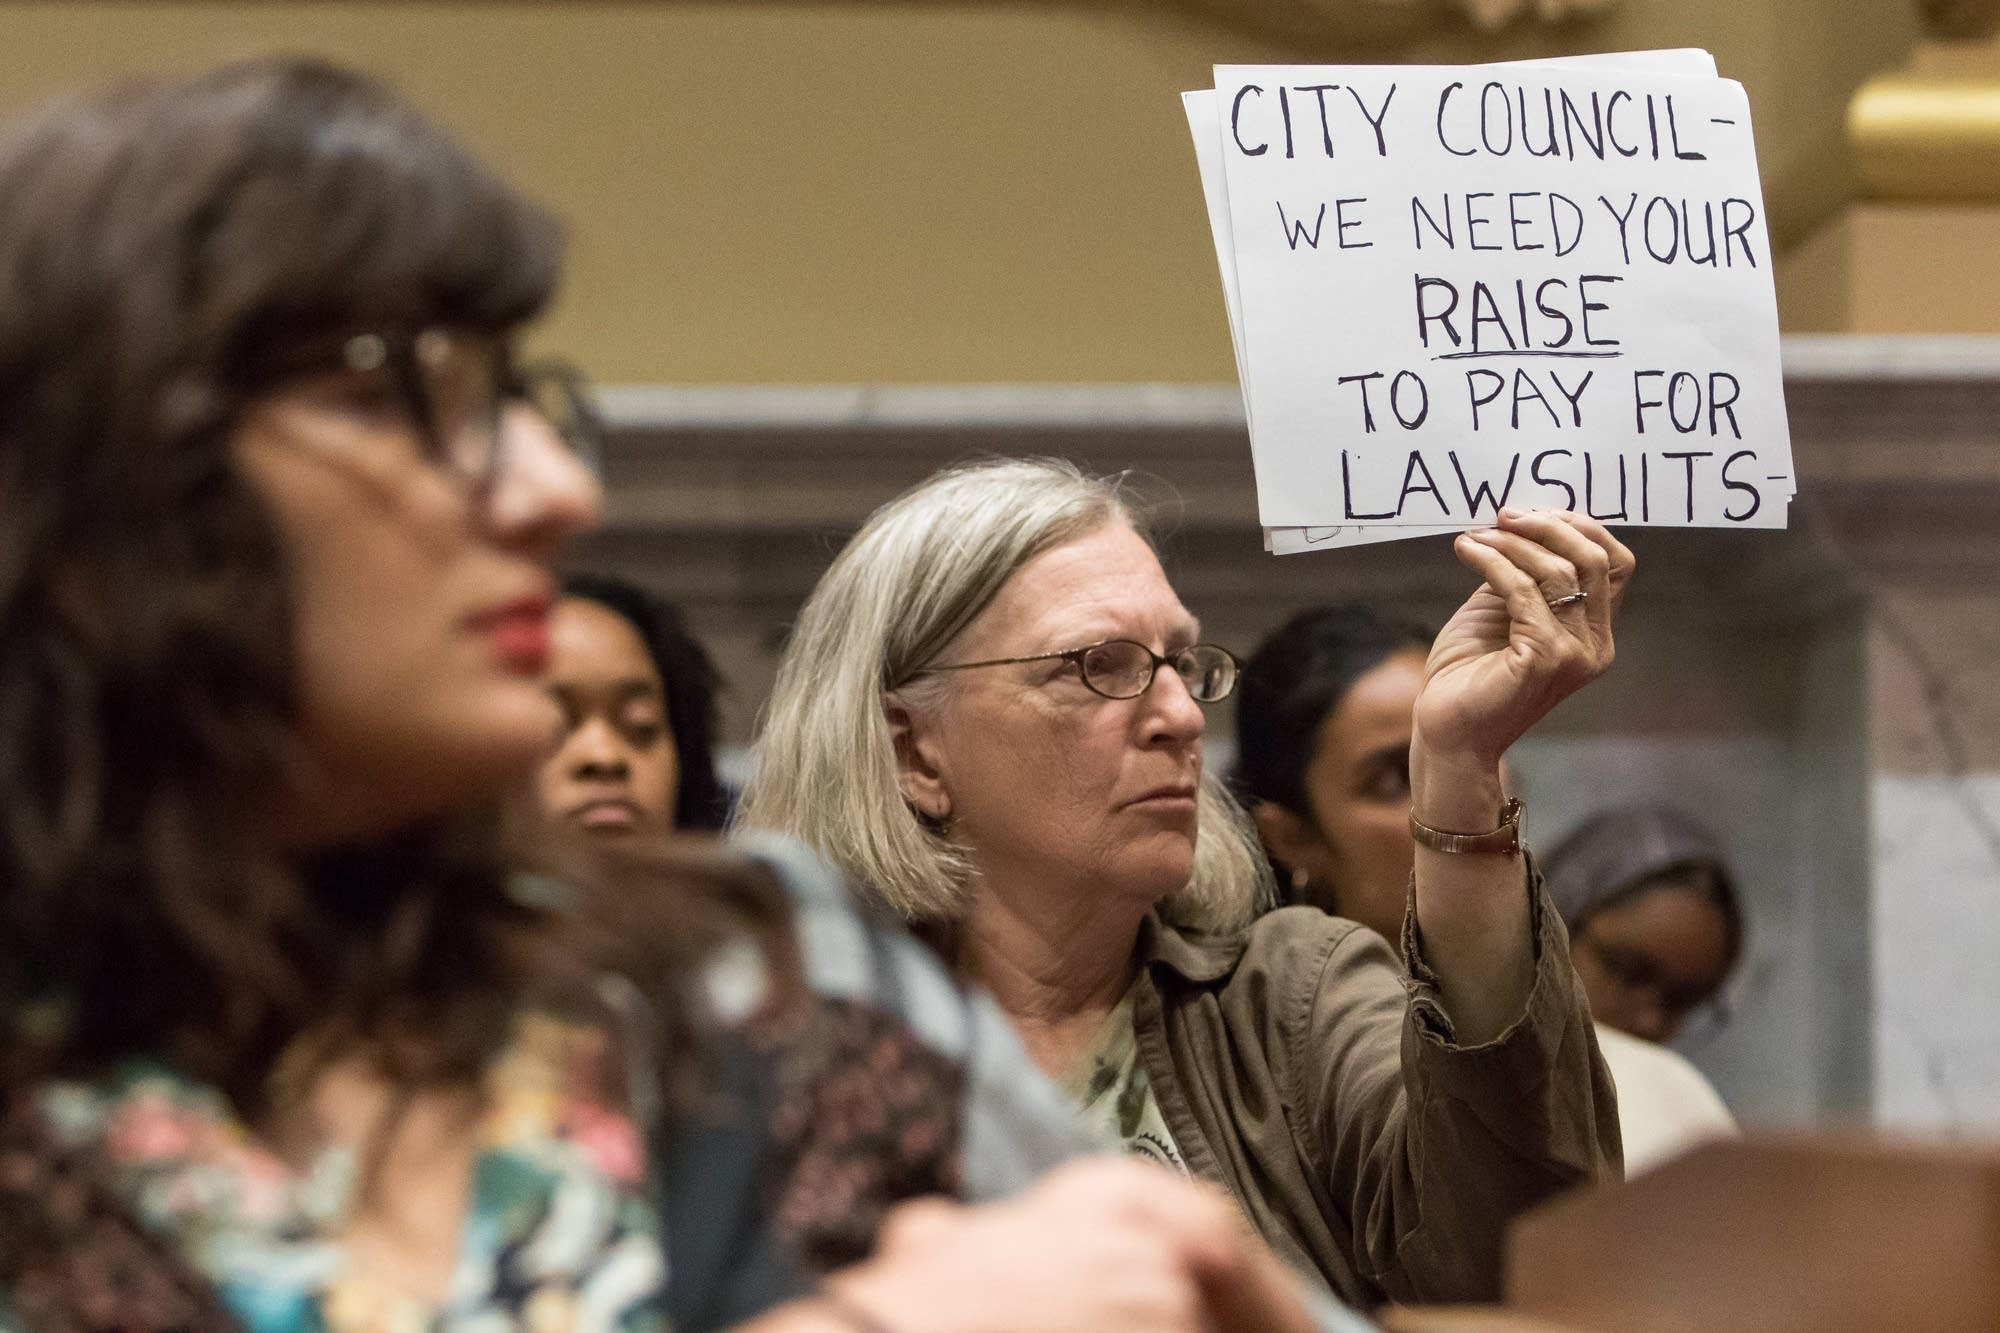 An attendee holds up a sign behind the speaker.